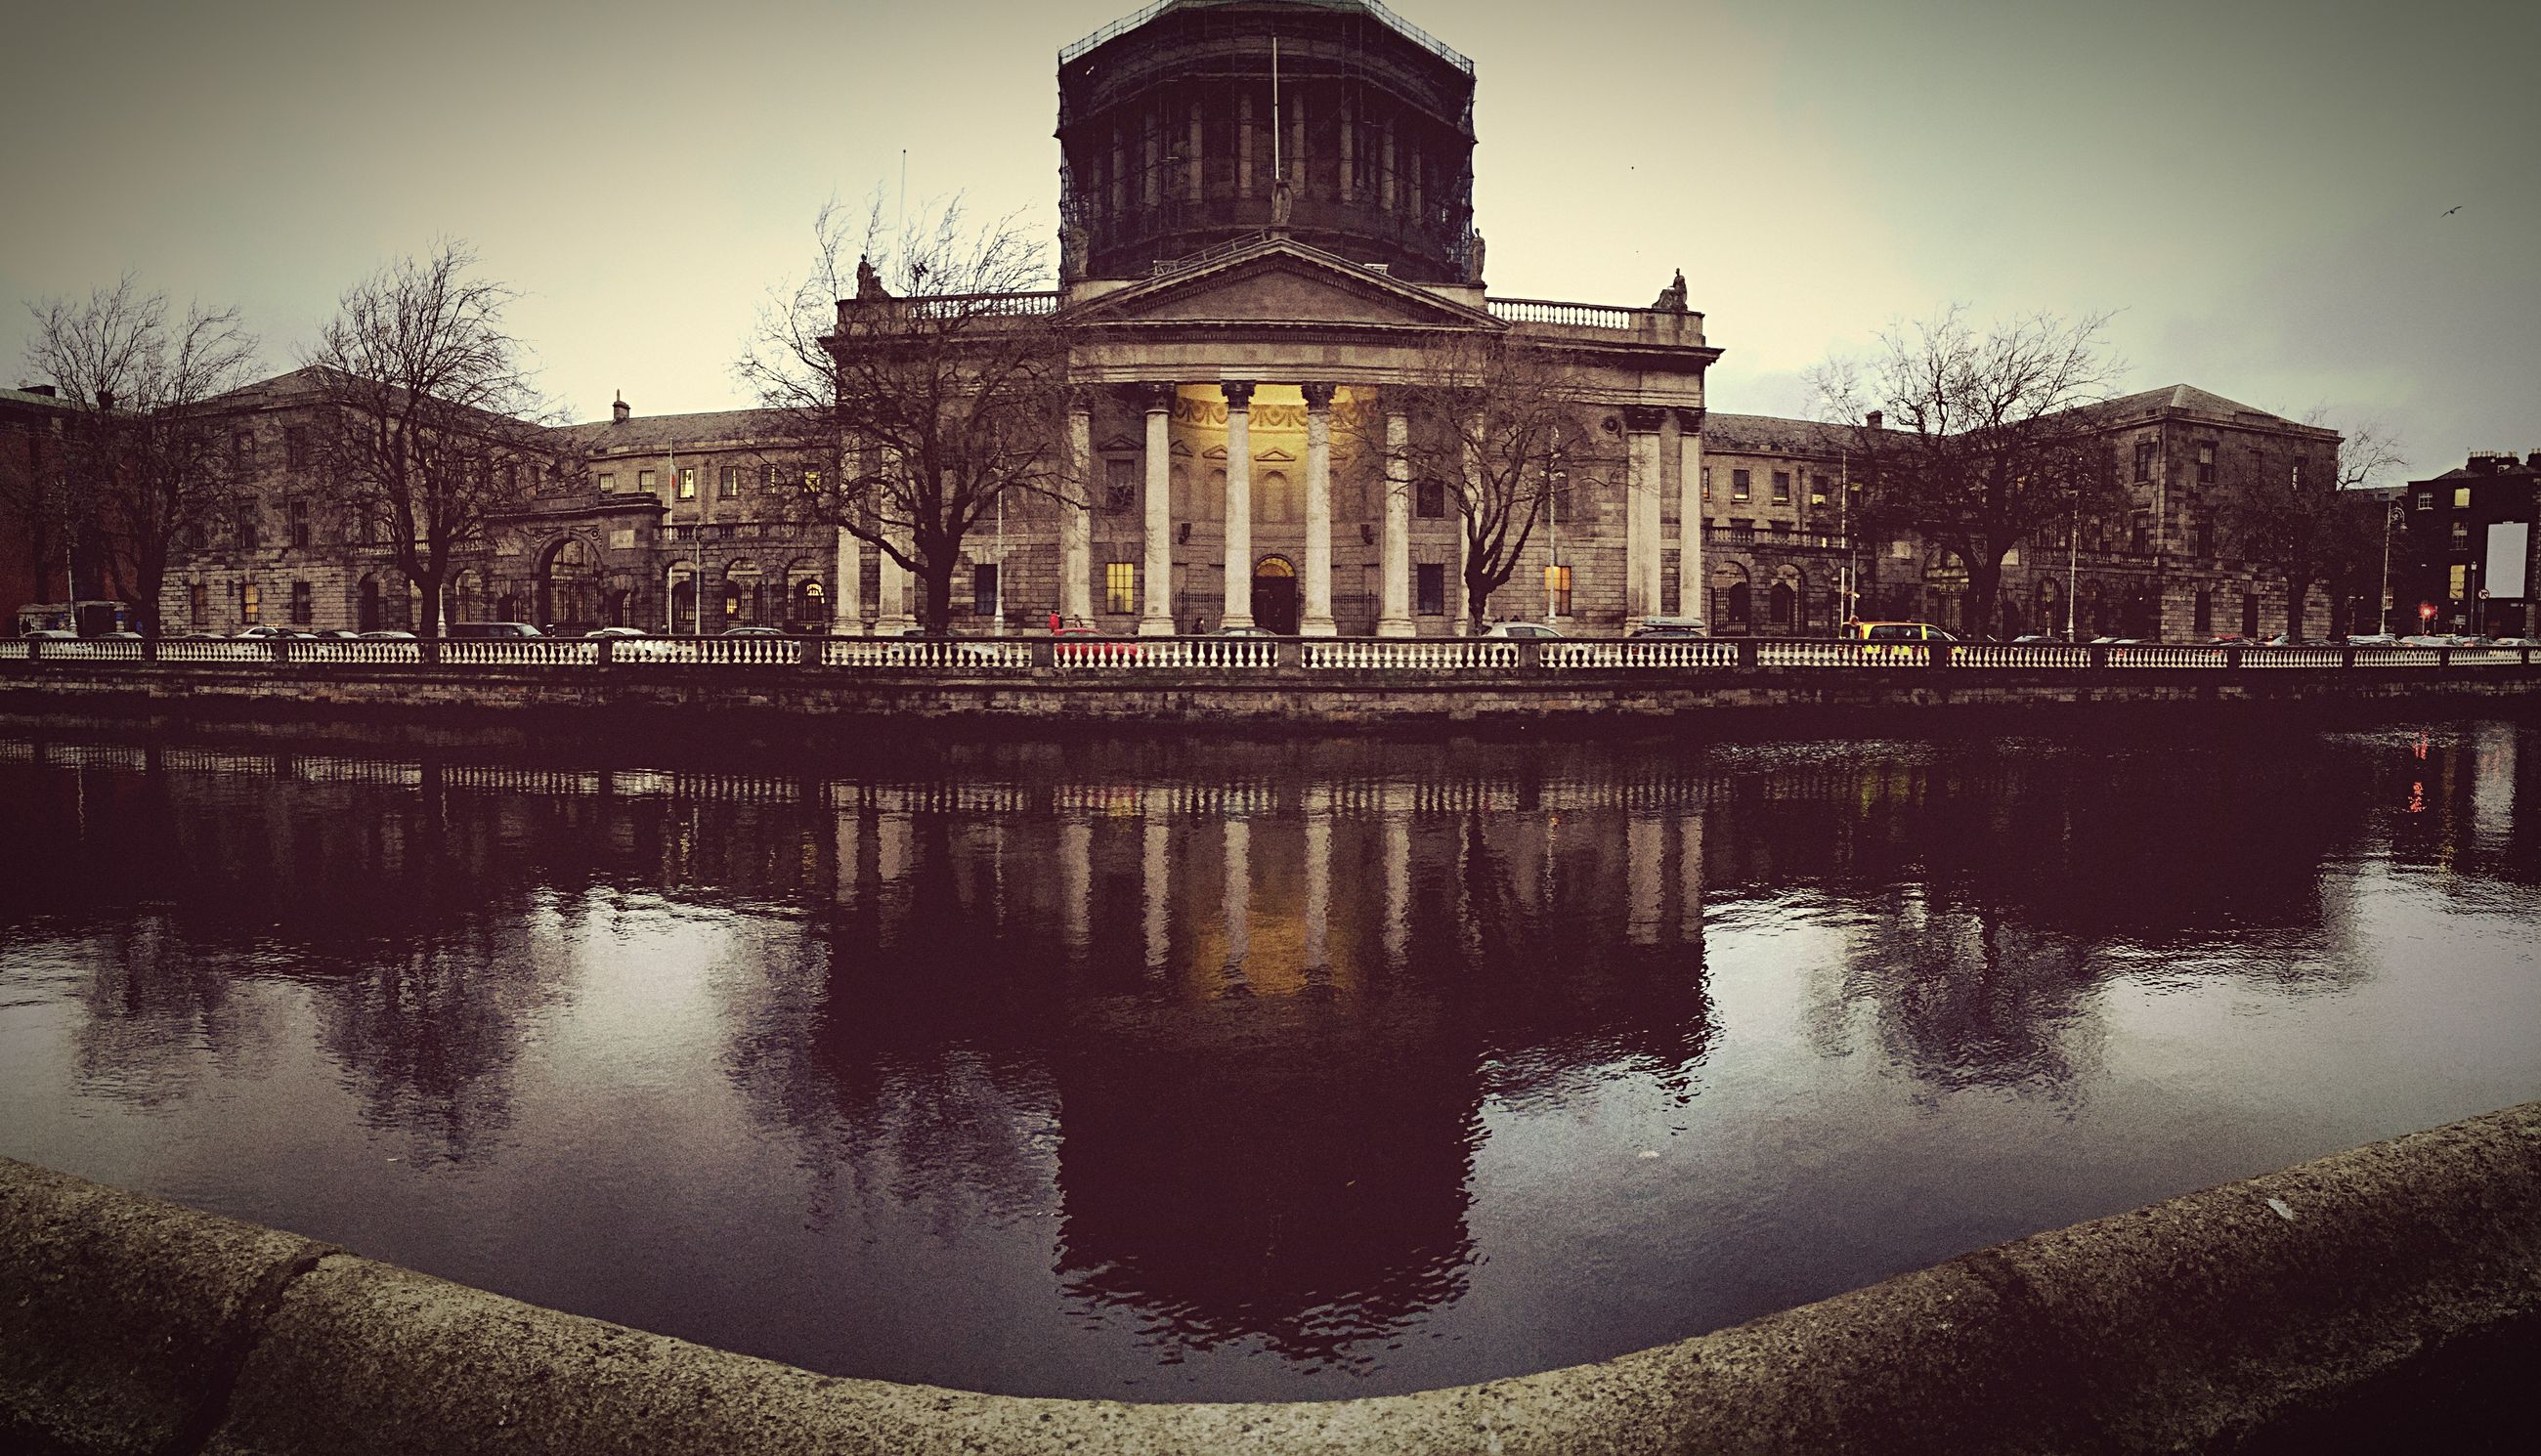 architecture, building exterior, built structure, reflection, water, waterfront, clear sky, sky, city, river, lake, history, pond, travel destinations, building, outdoors, famous place, day, place of worship, religion